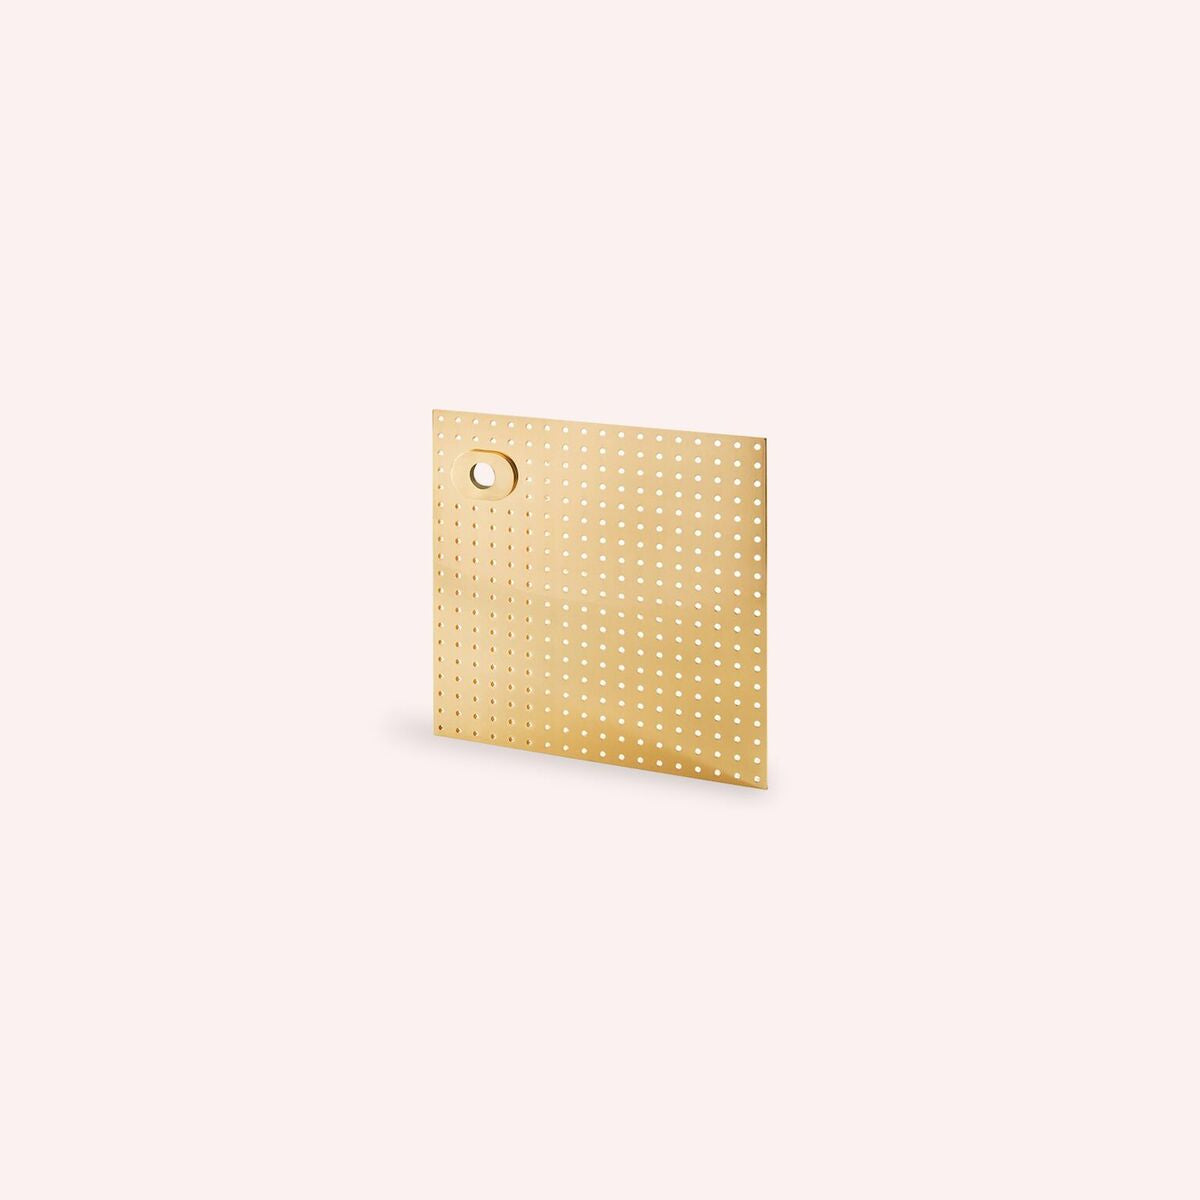 Stardust - Perforated square plate